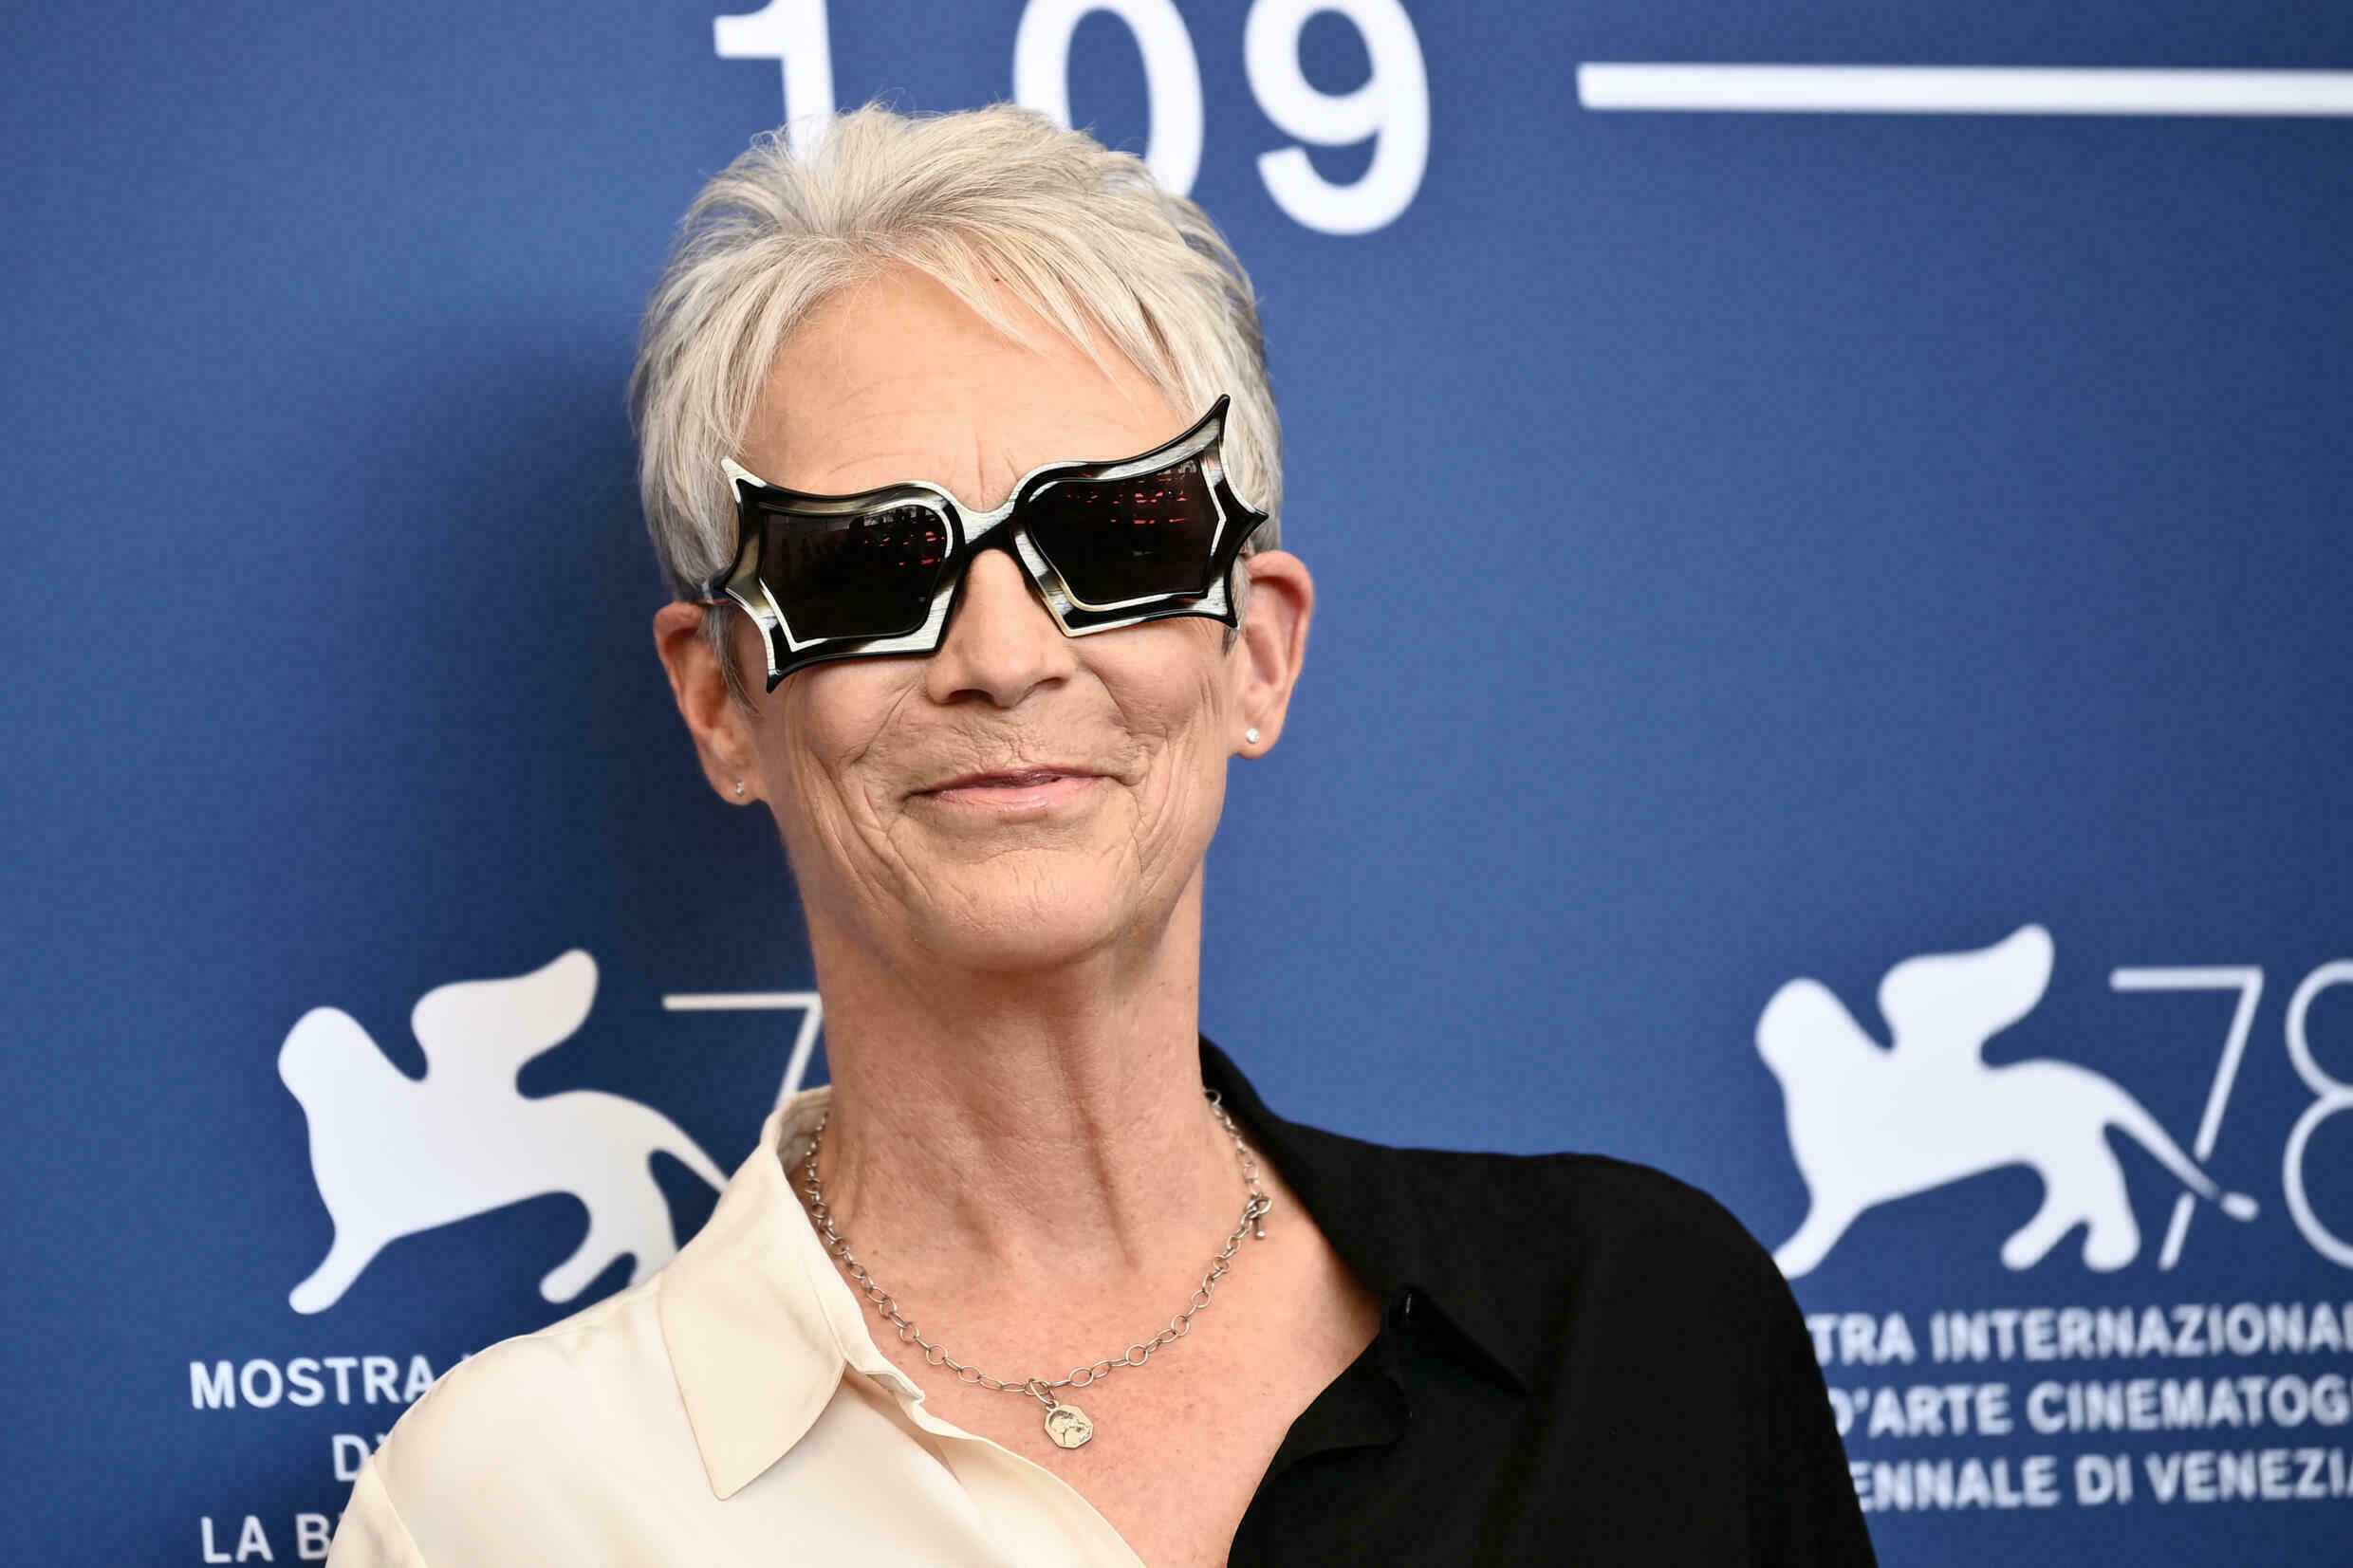 Jamie Lee Curtis in Venice for the Mostra, September 8, 2021